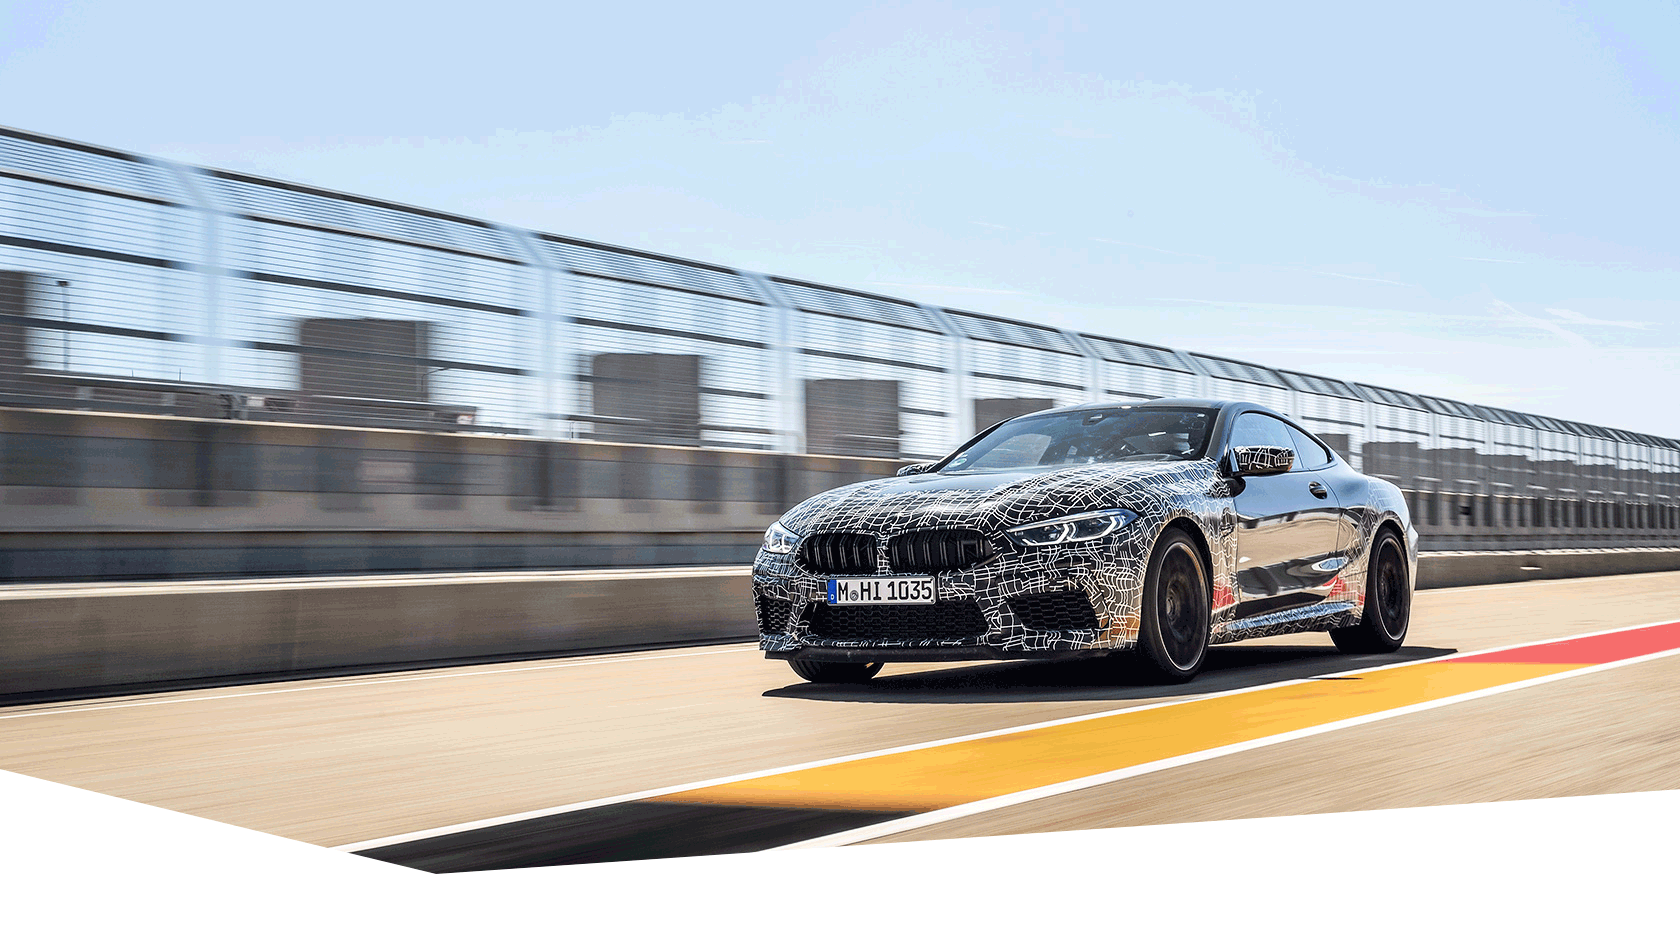 New BMW M8 Coupé with camouflage on a race track